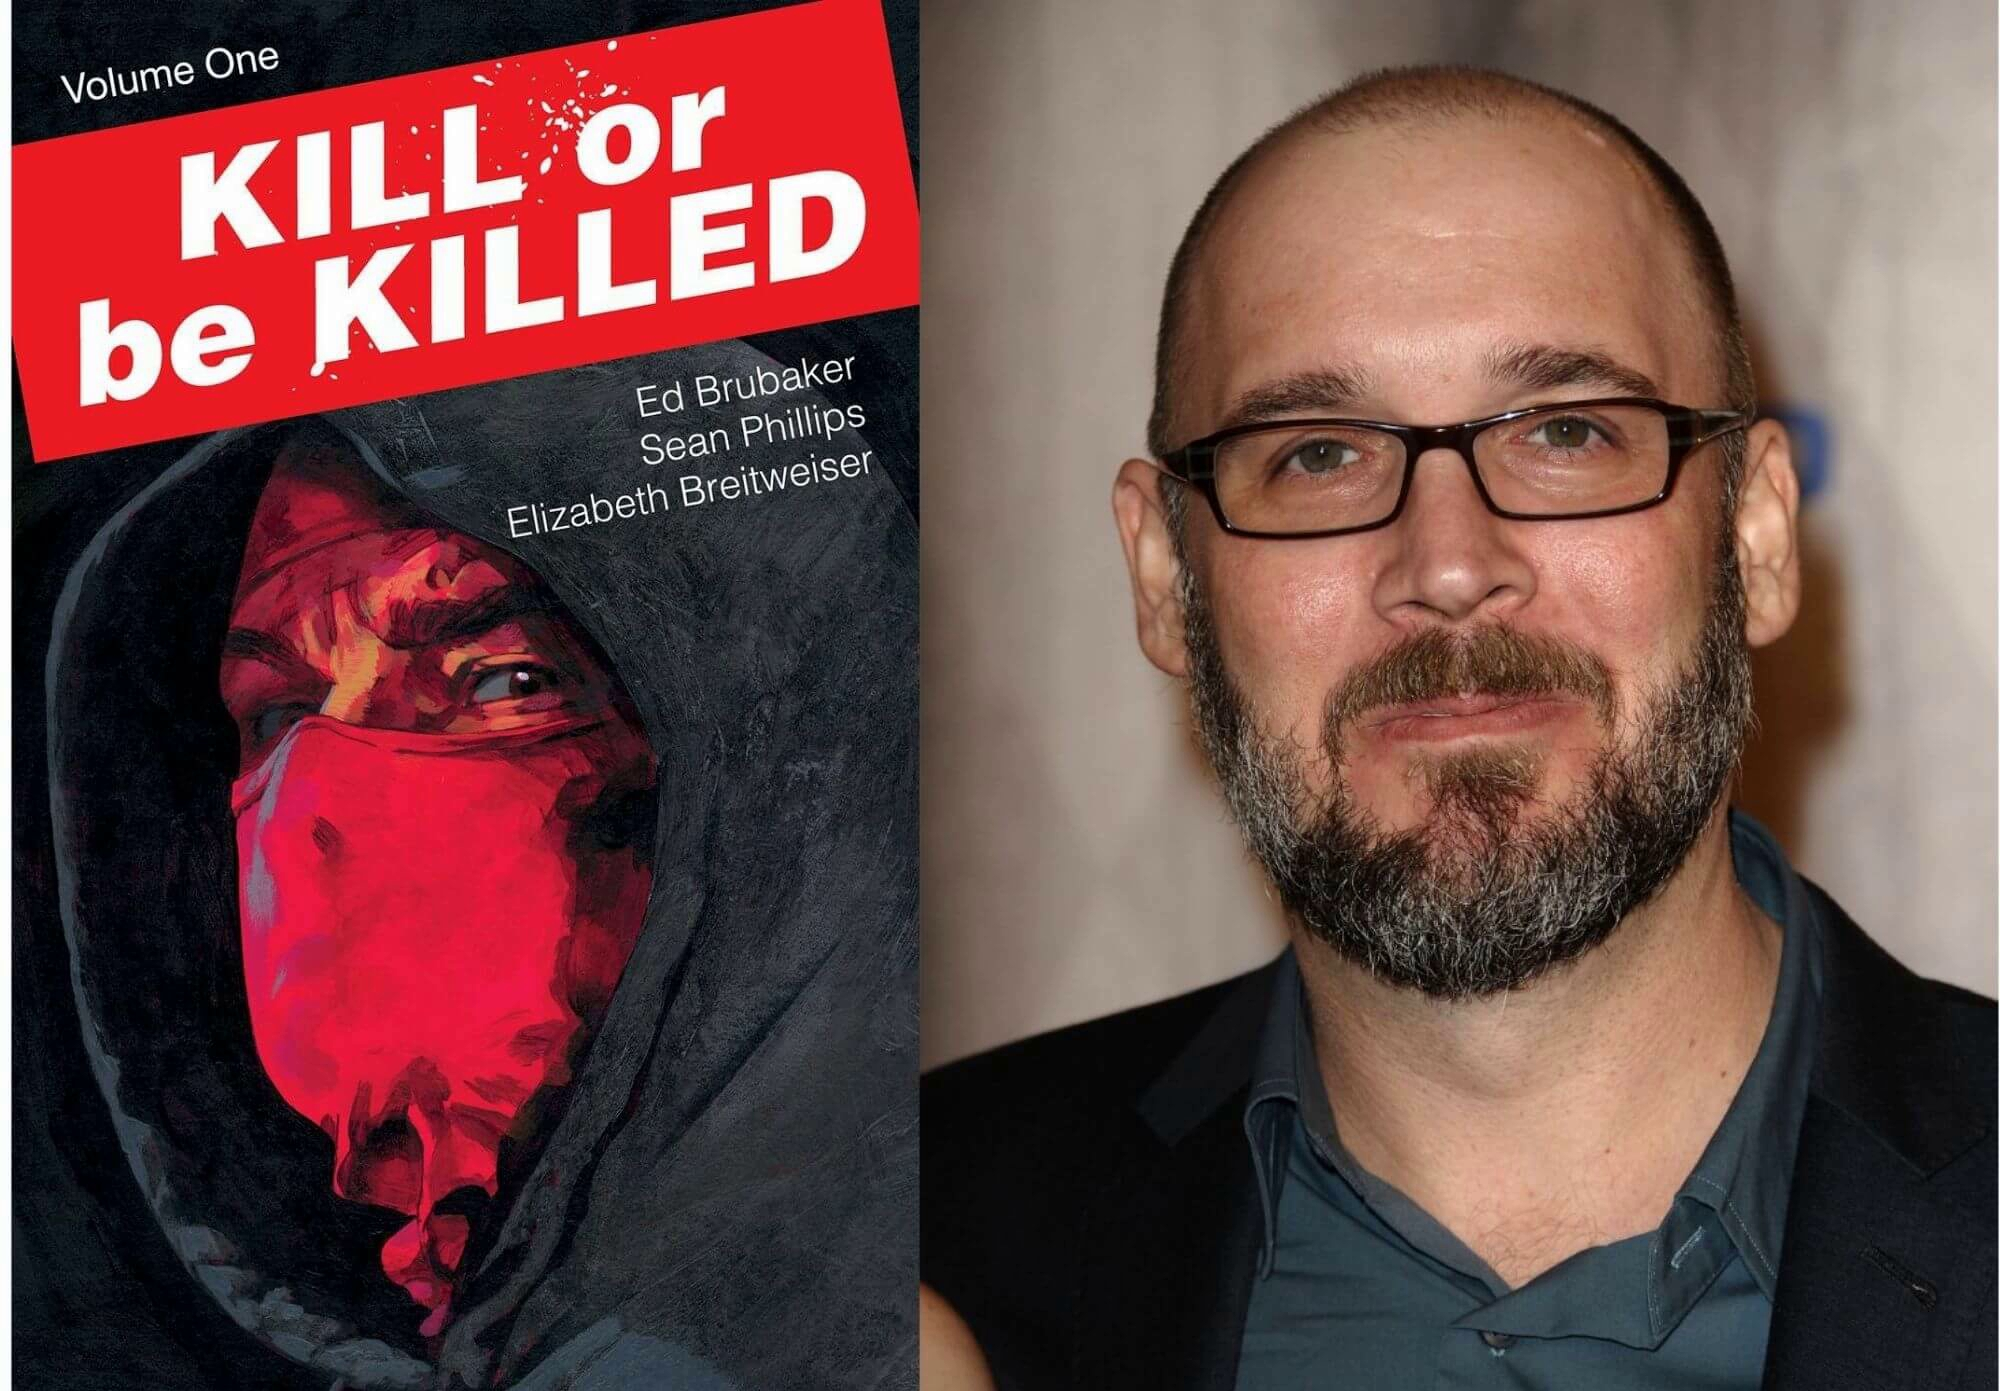 Kill Or be Killed vol 1 Ed Brubaker